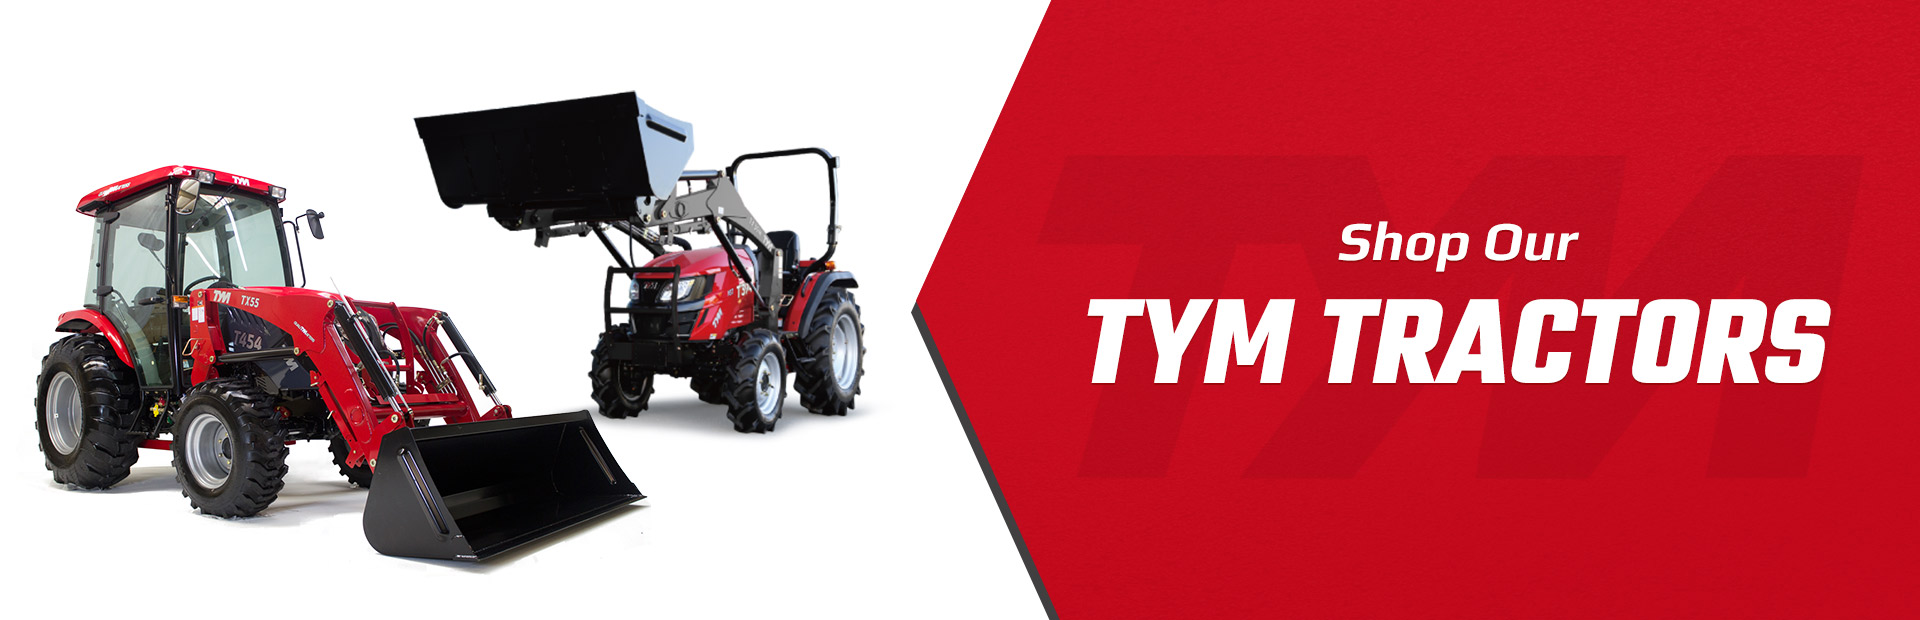 Shop Our TYM Tractors. Don't leave without yours!